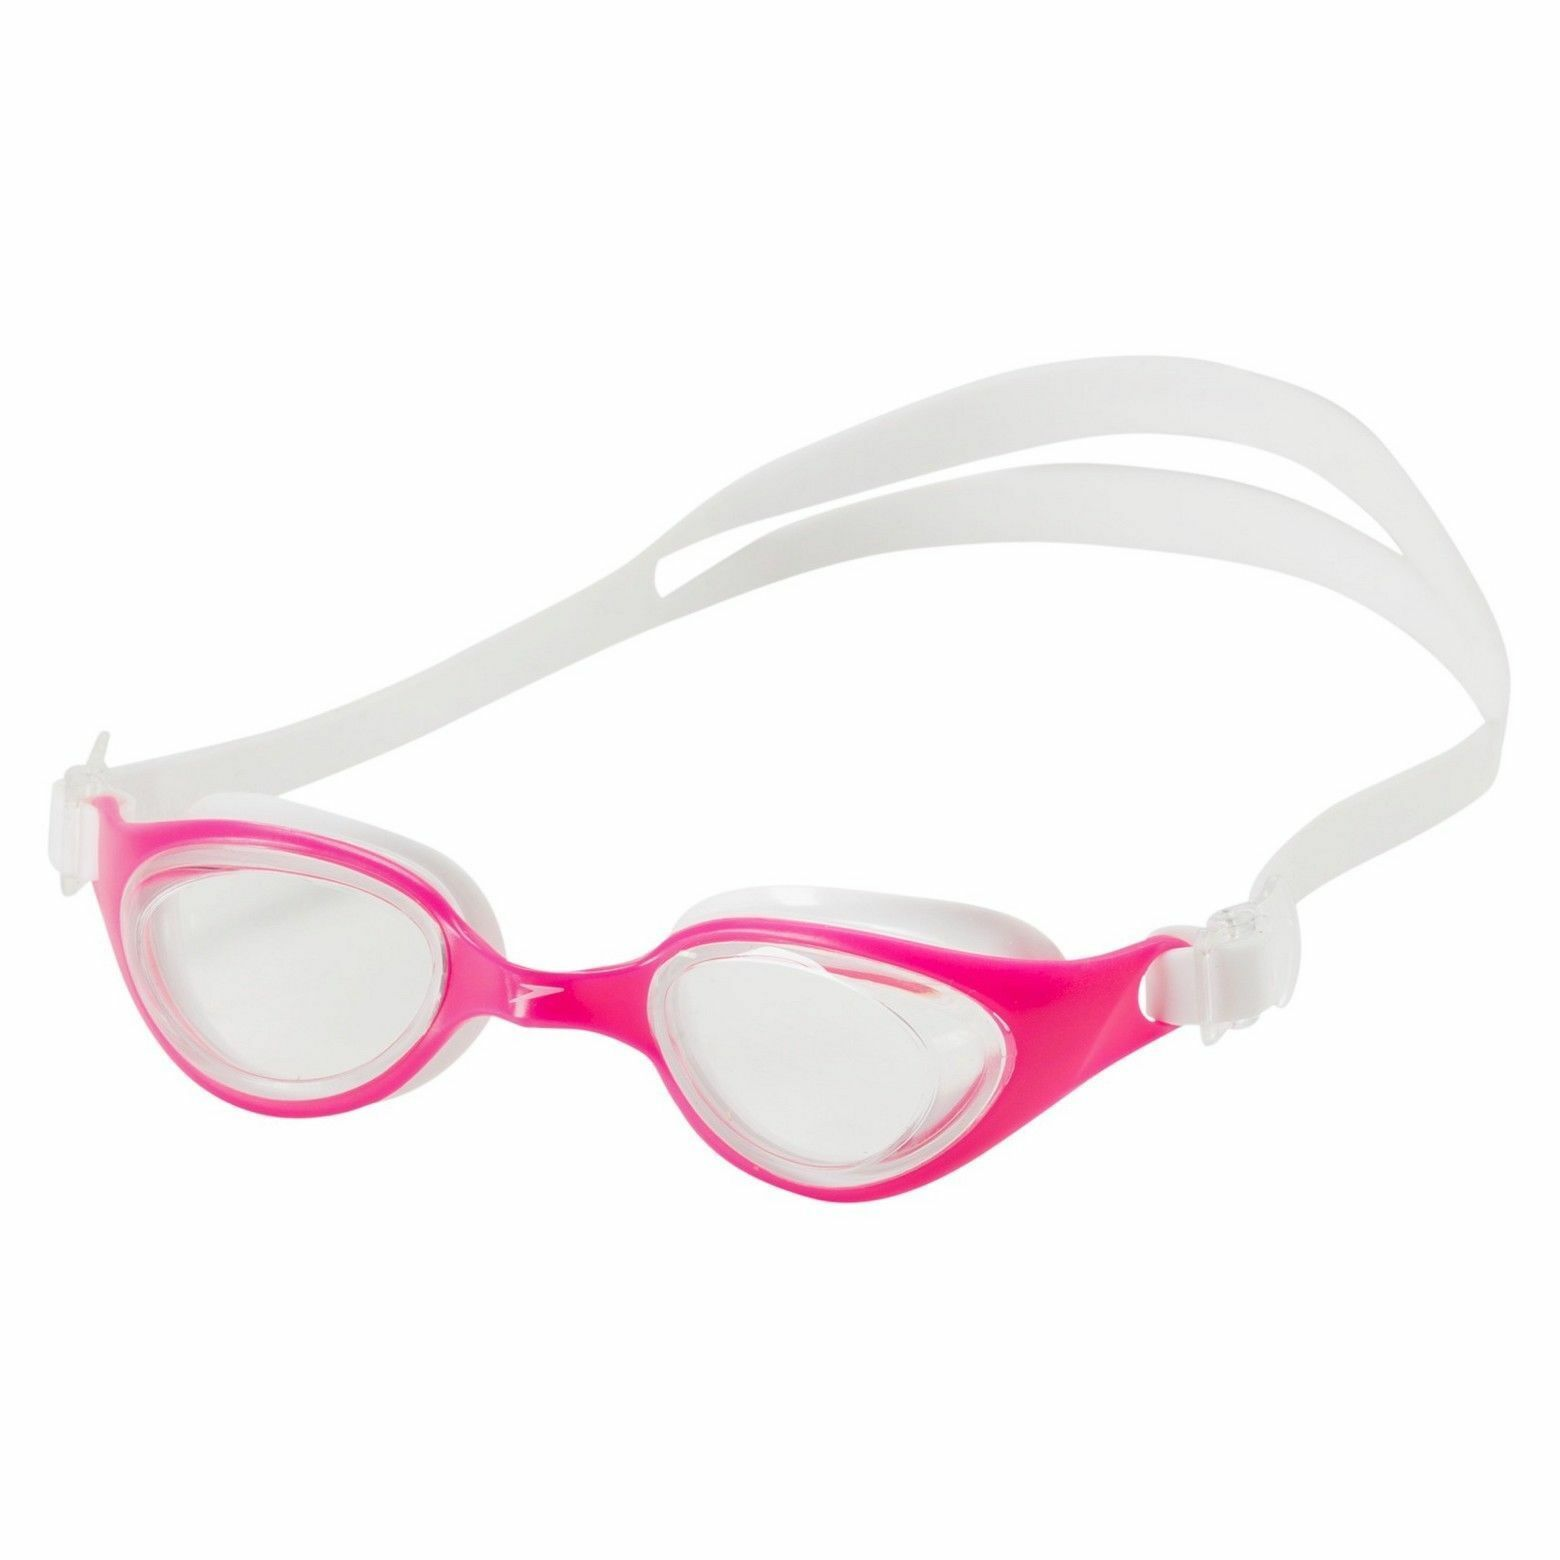 Speedo Scuba JR Swim Goggles Ages 6-14 Recreational Swimmers